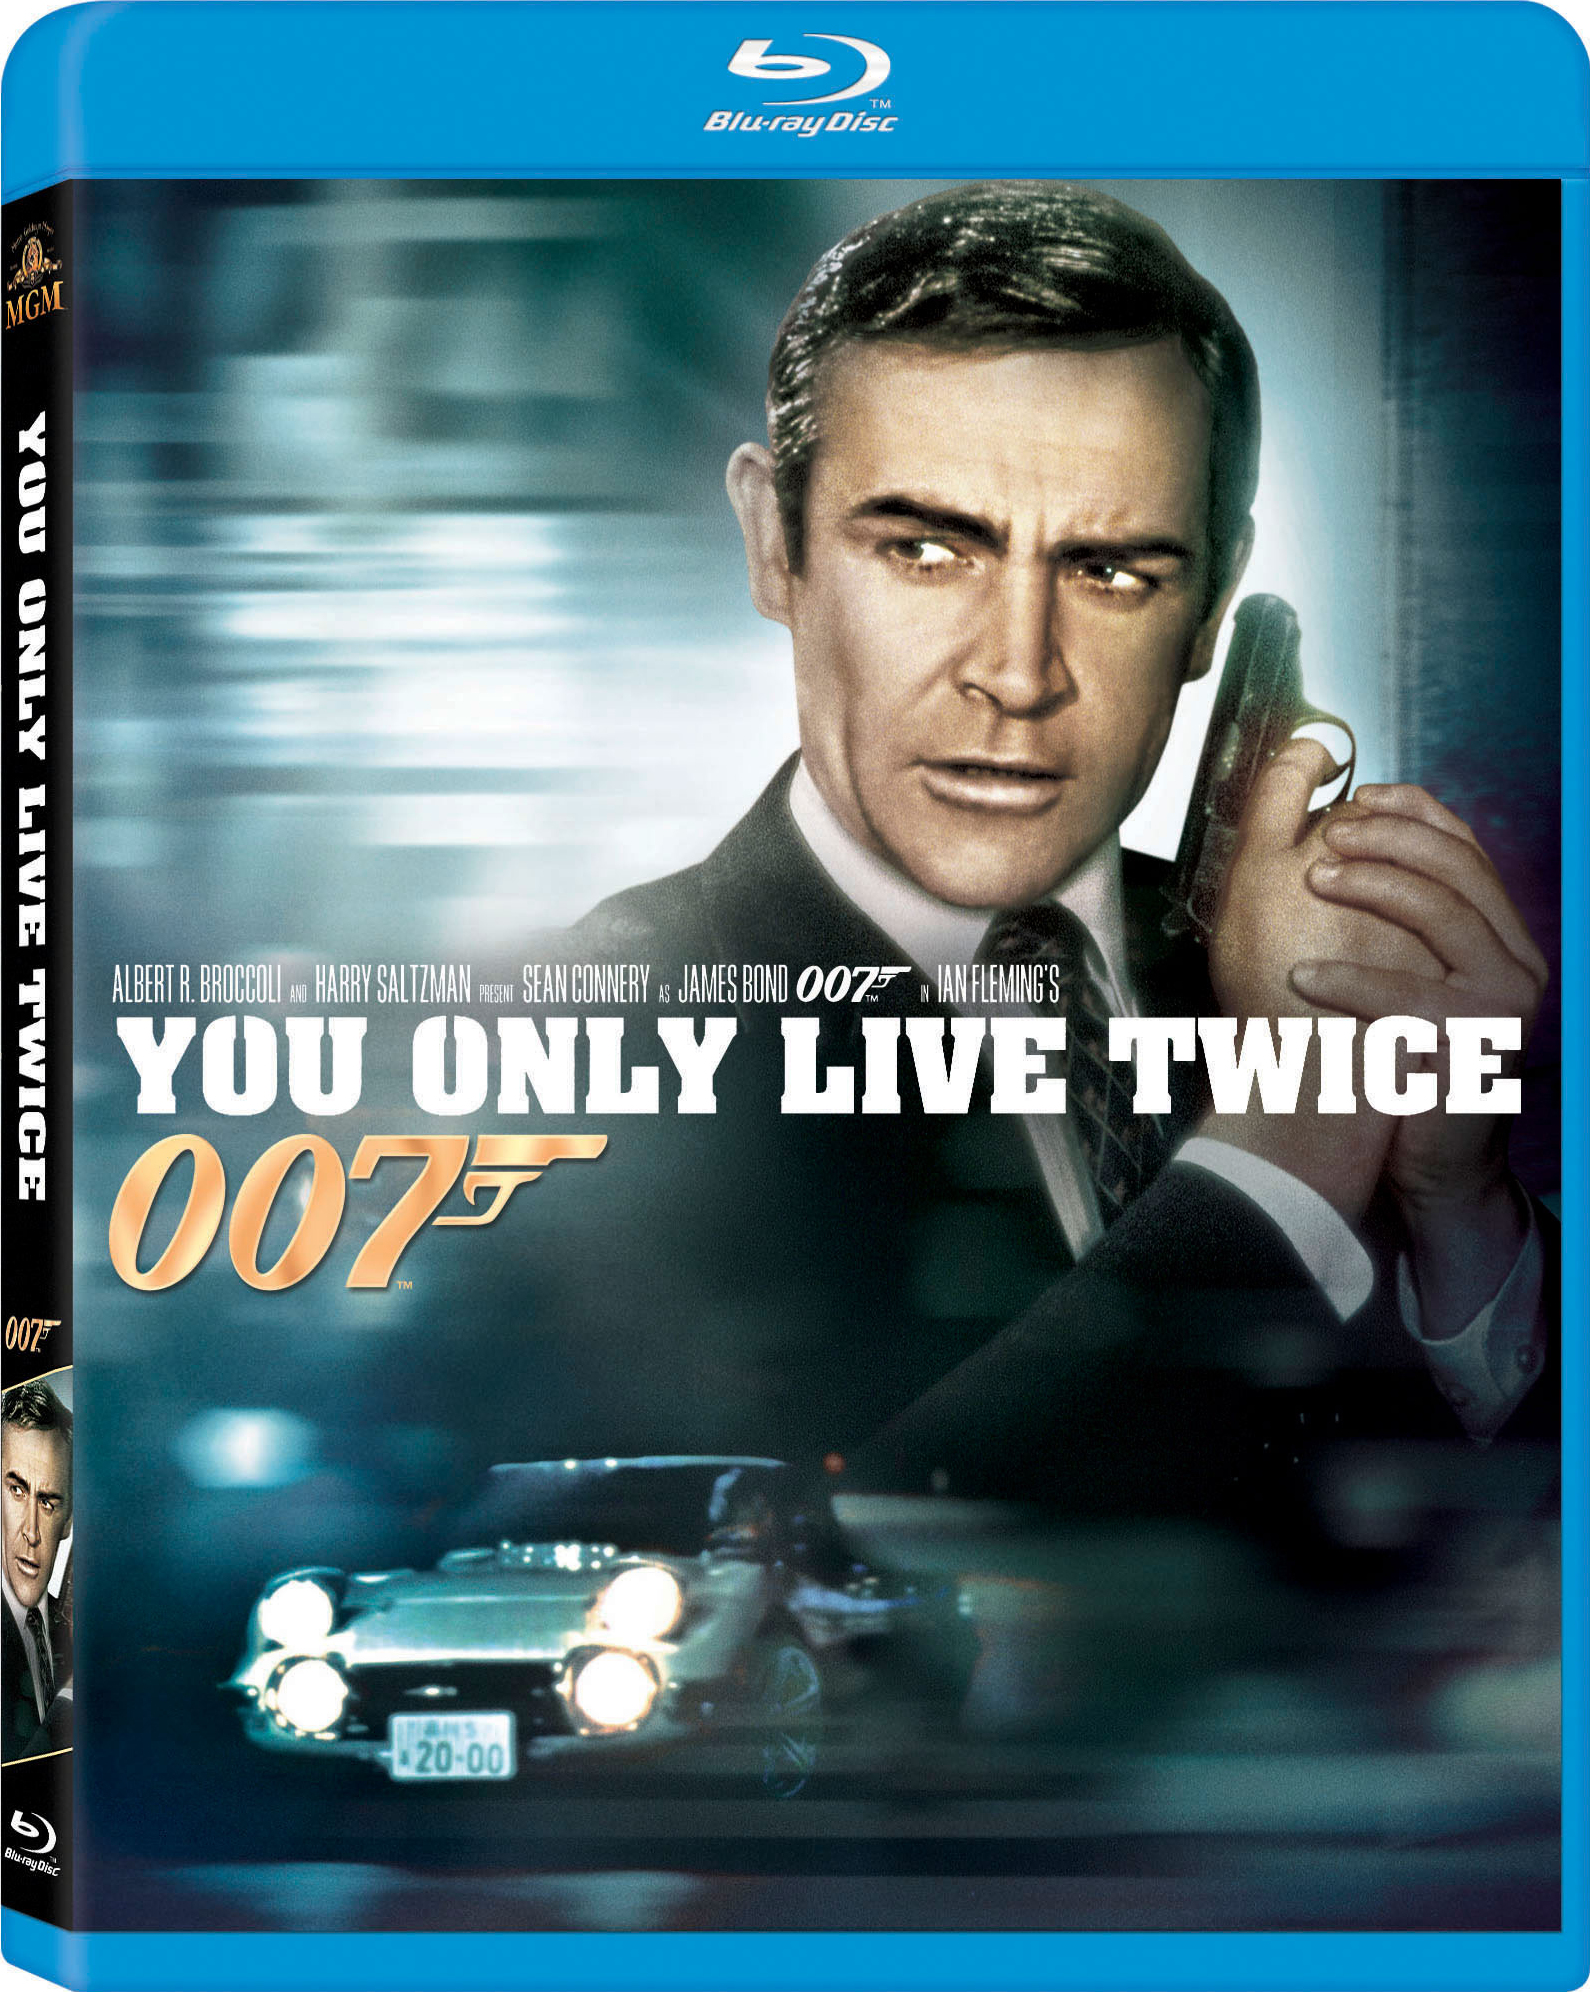 Casino royale 007 full movie free download mp4 gambling sites ireland